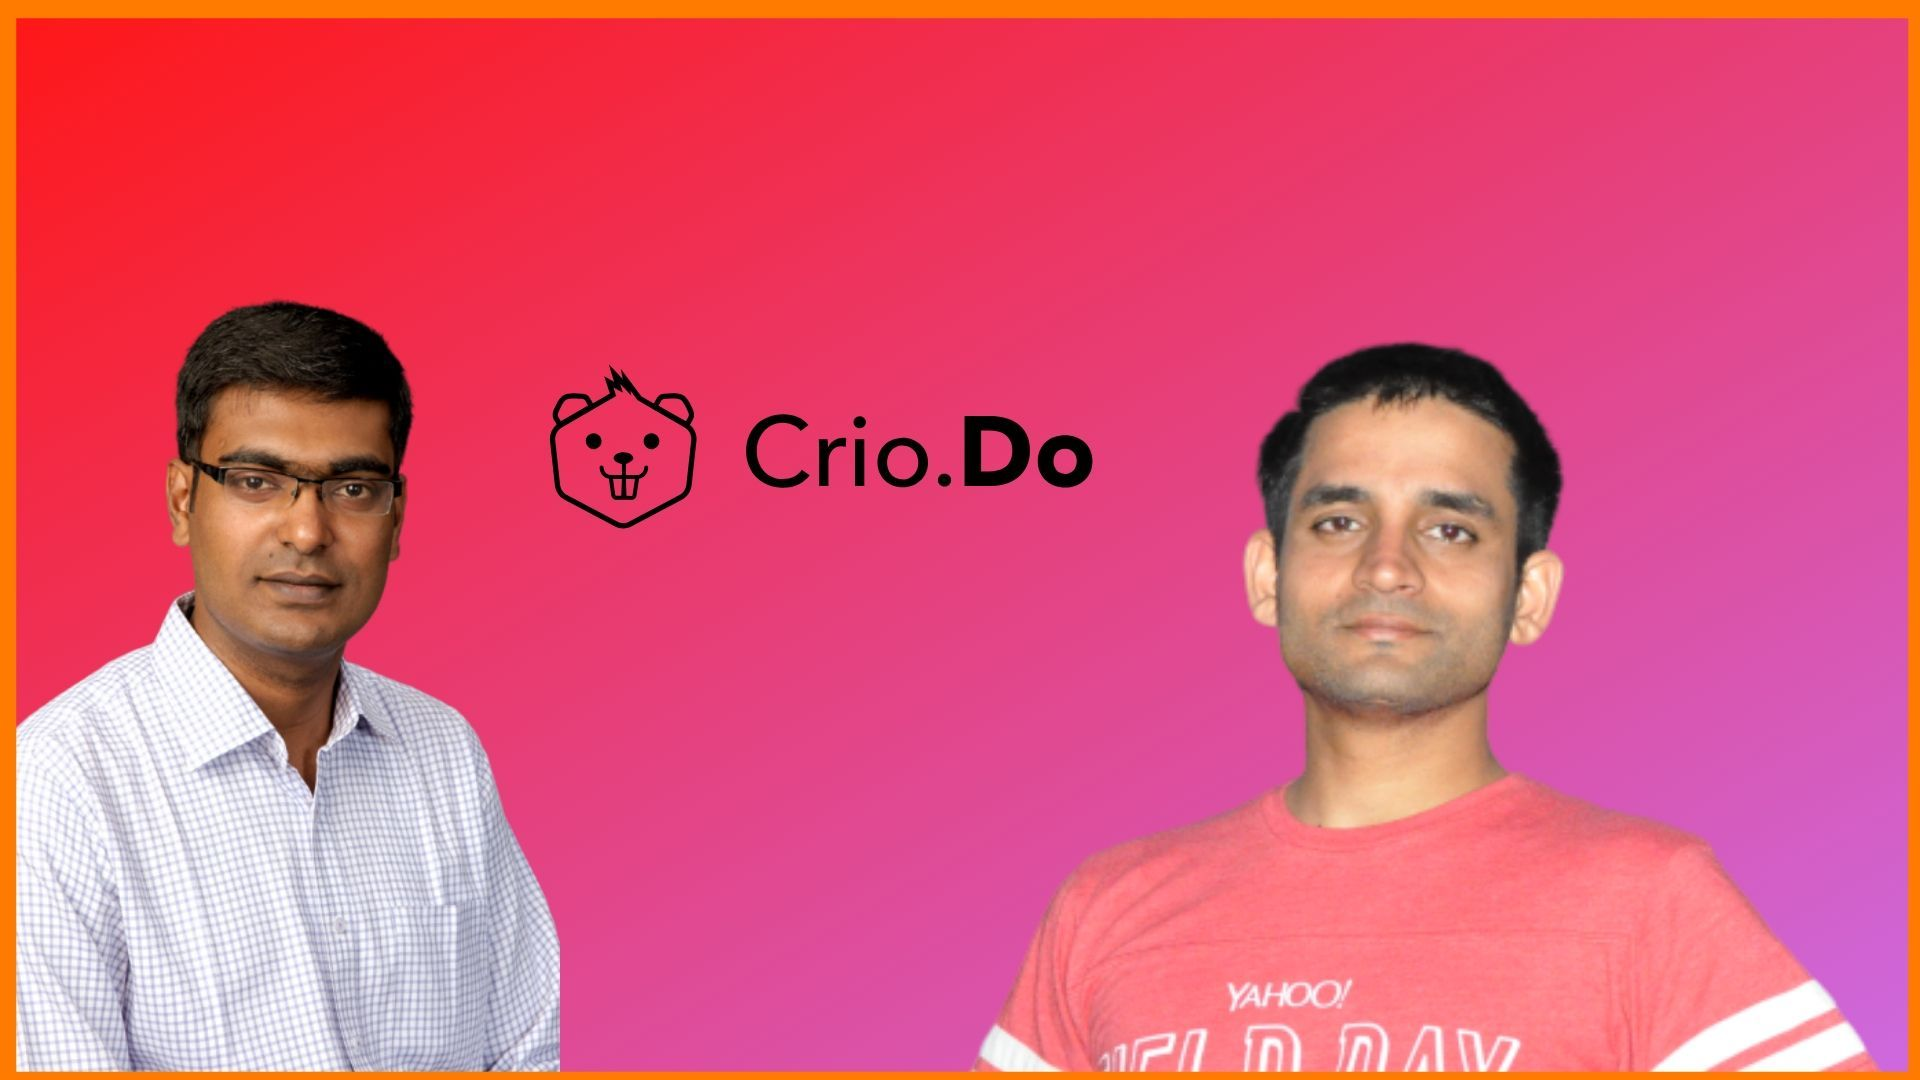 Crio.Do - Build Real Products to Learn Tech Hands-On!